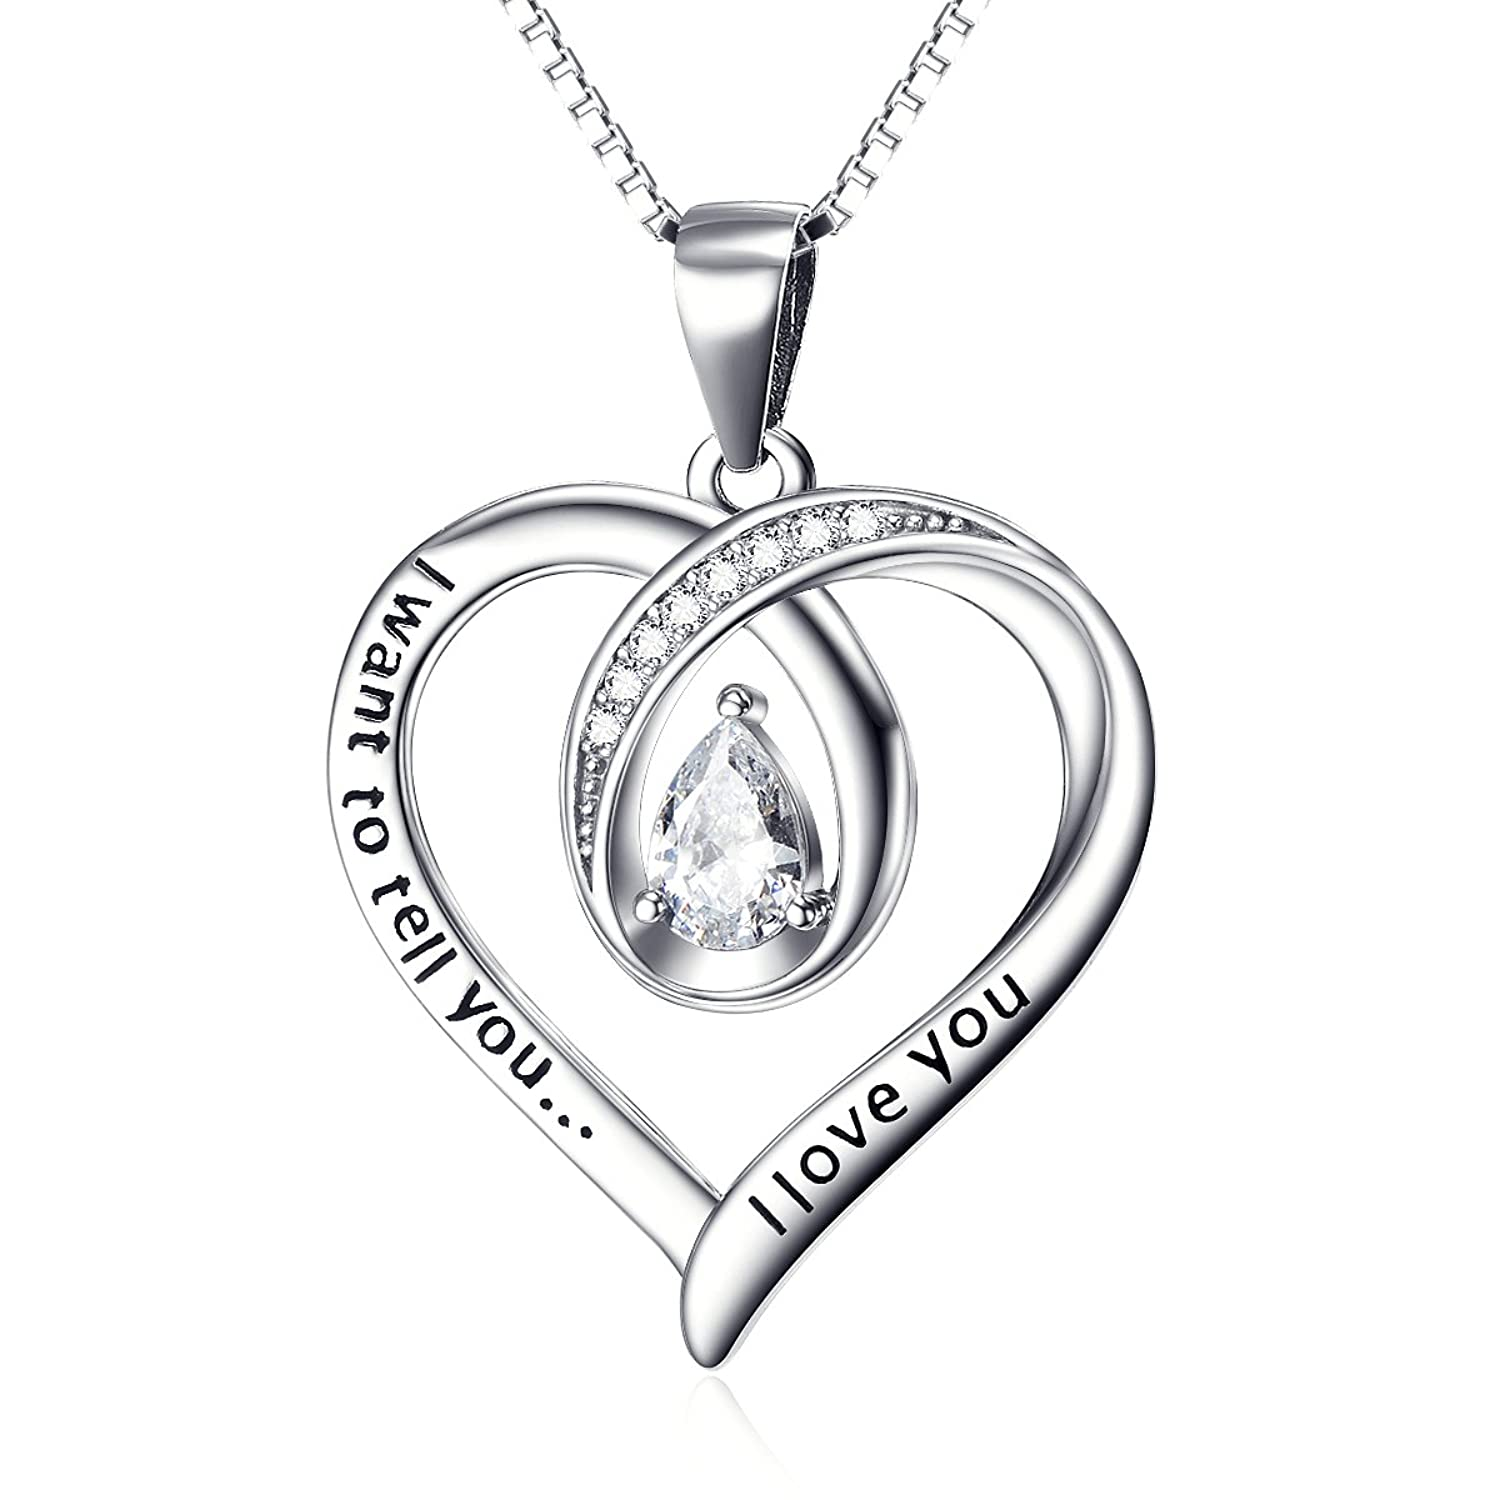 Amazon yfn s925 sterling silver i want to tell you i love amazon yfn s925 sterling silver i want to tell you i love you infinity love heart engraved charm pendant necklace 18charm heart jewelry mozeypictures Images